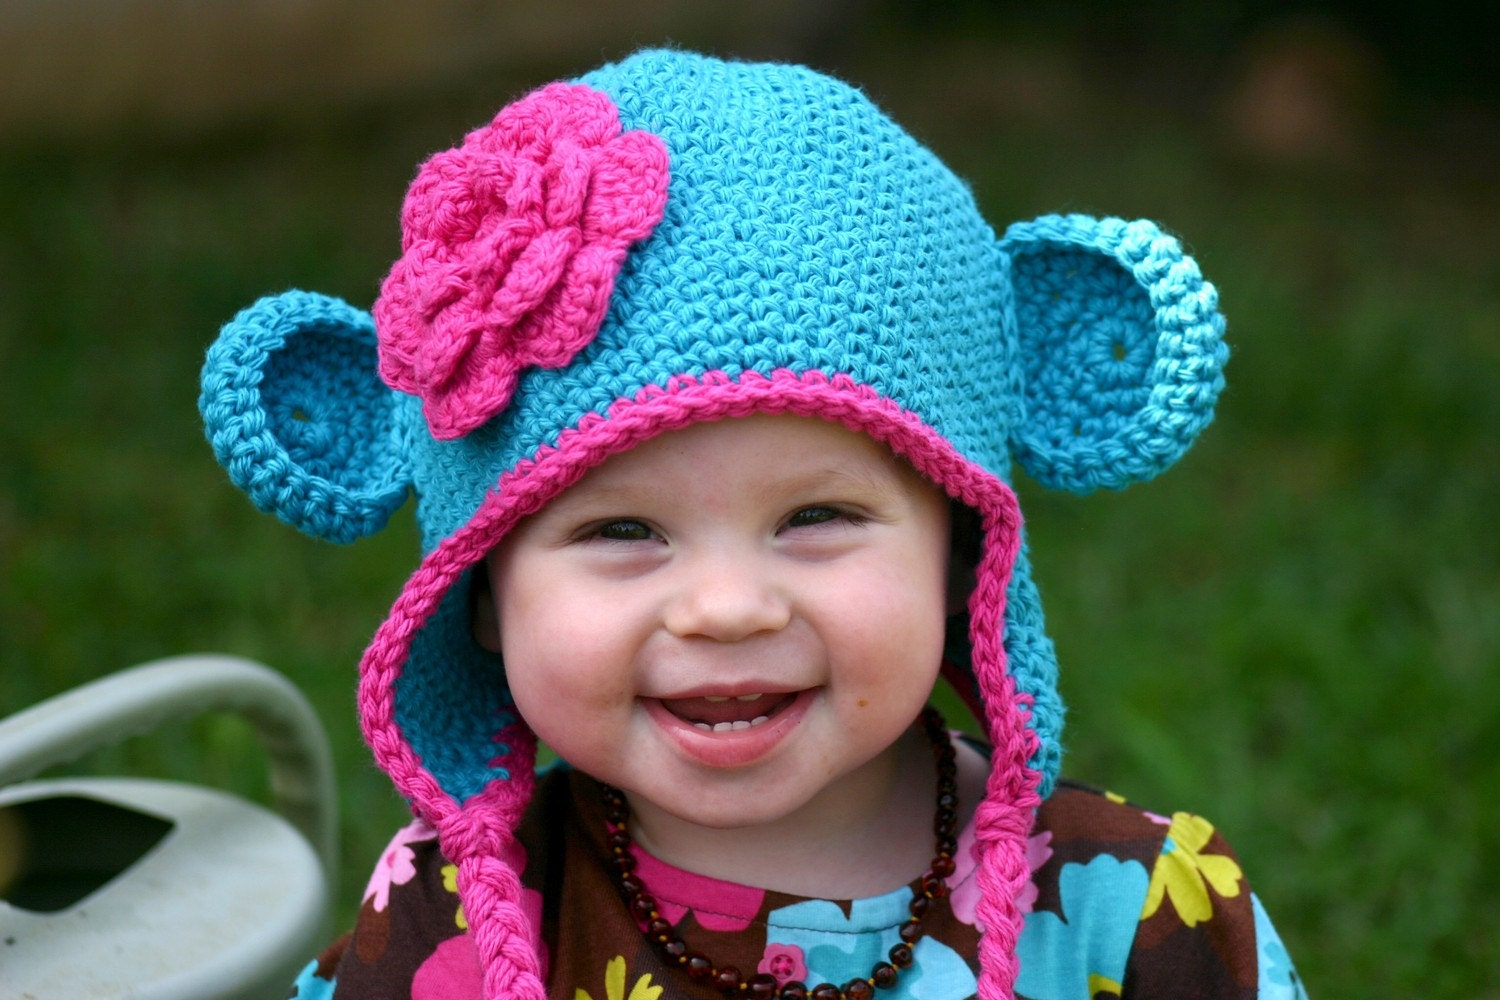 12-24 months Monkey Hat in peacock blue and bright pink